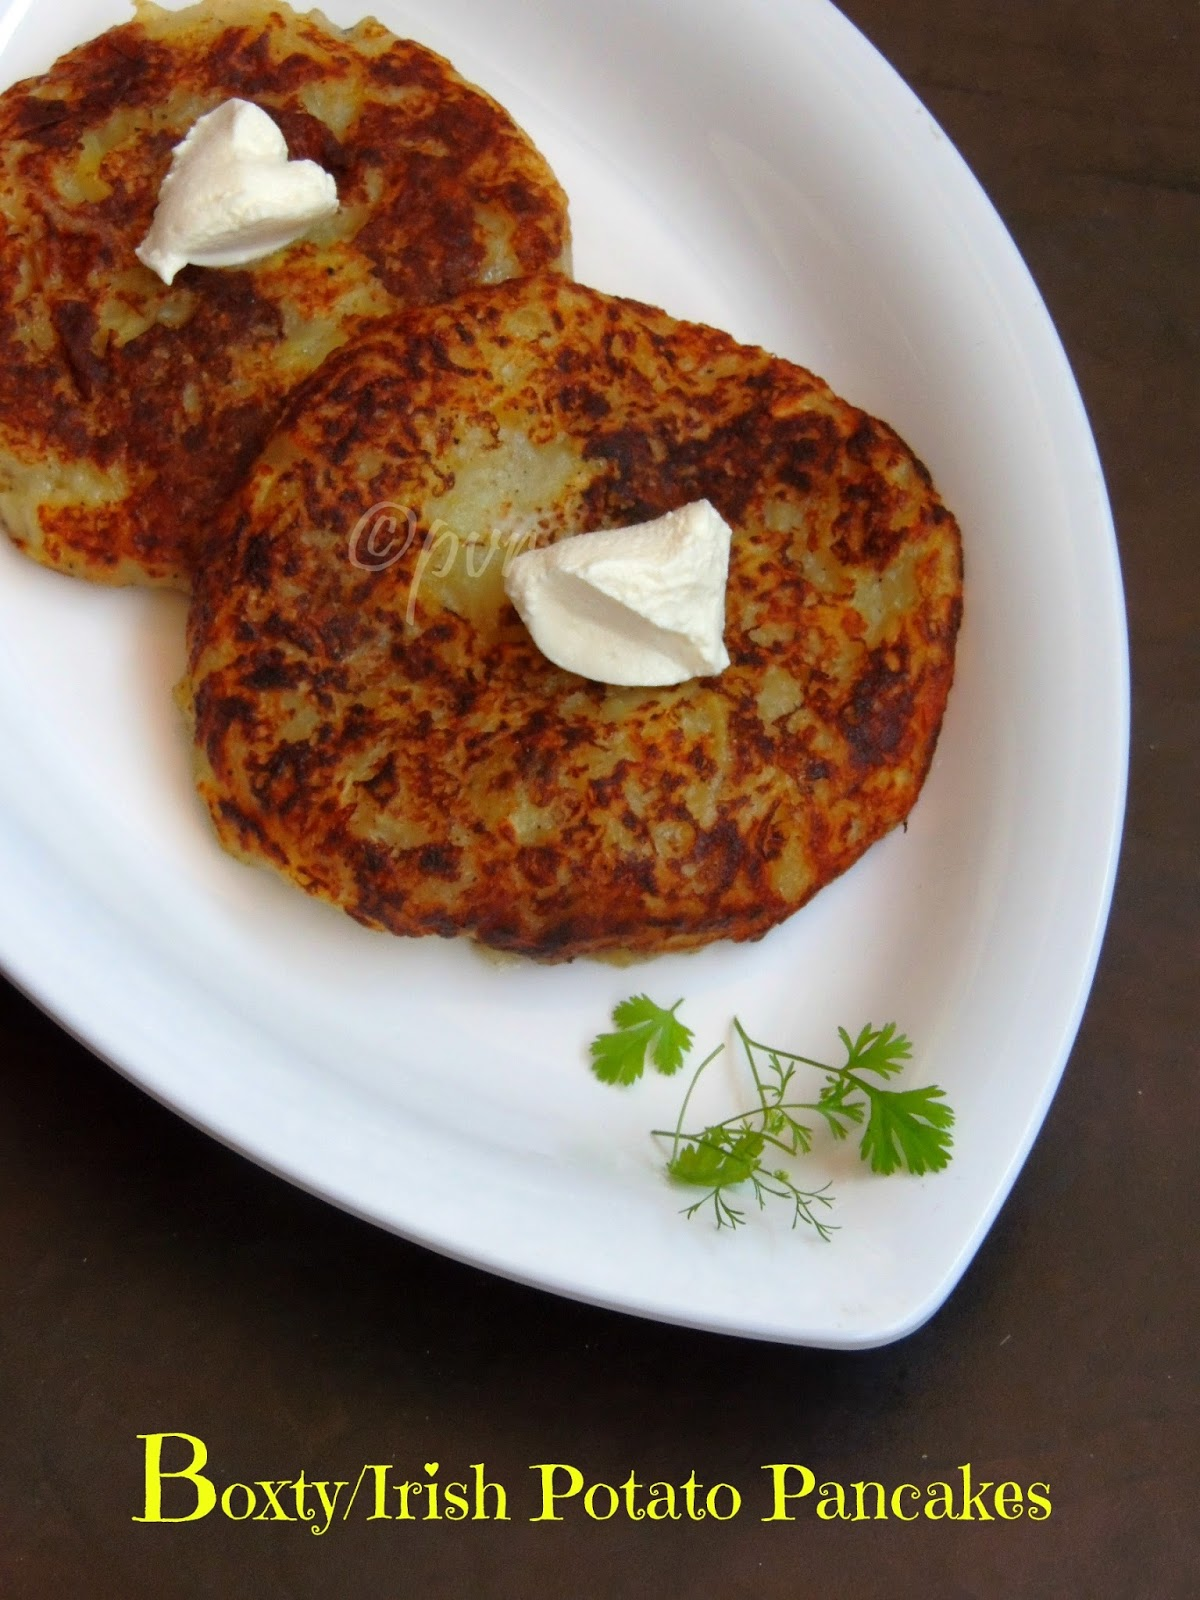 Priya's Versatile Recipes: Boxty - Irish Potato Pancakes